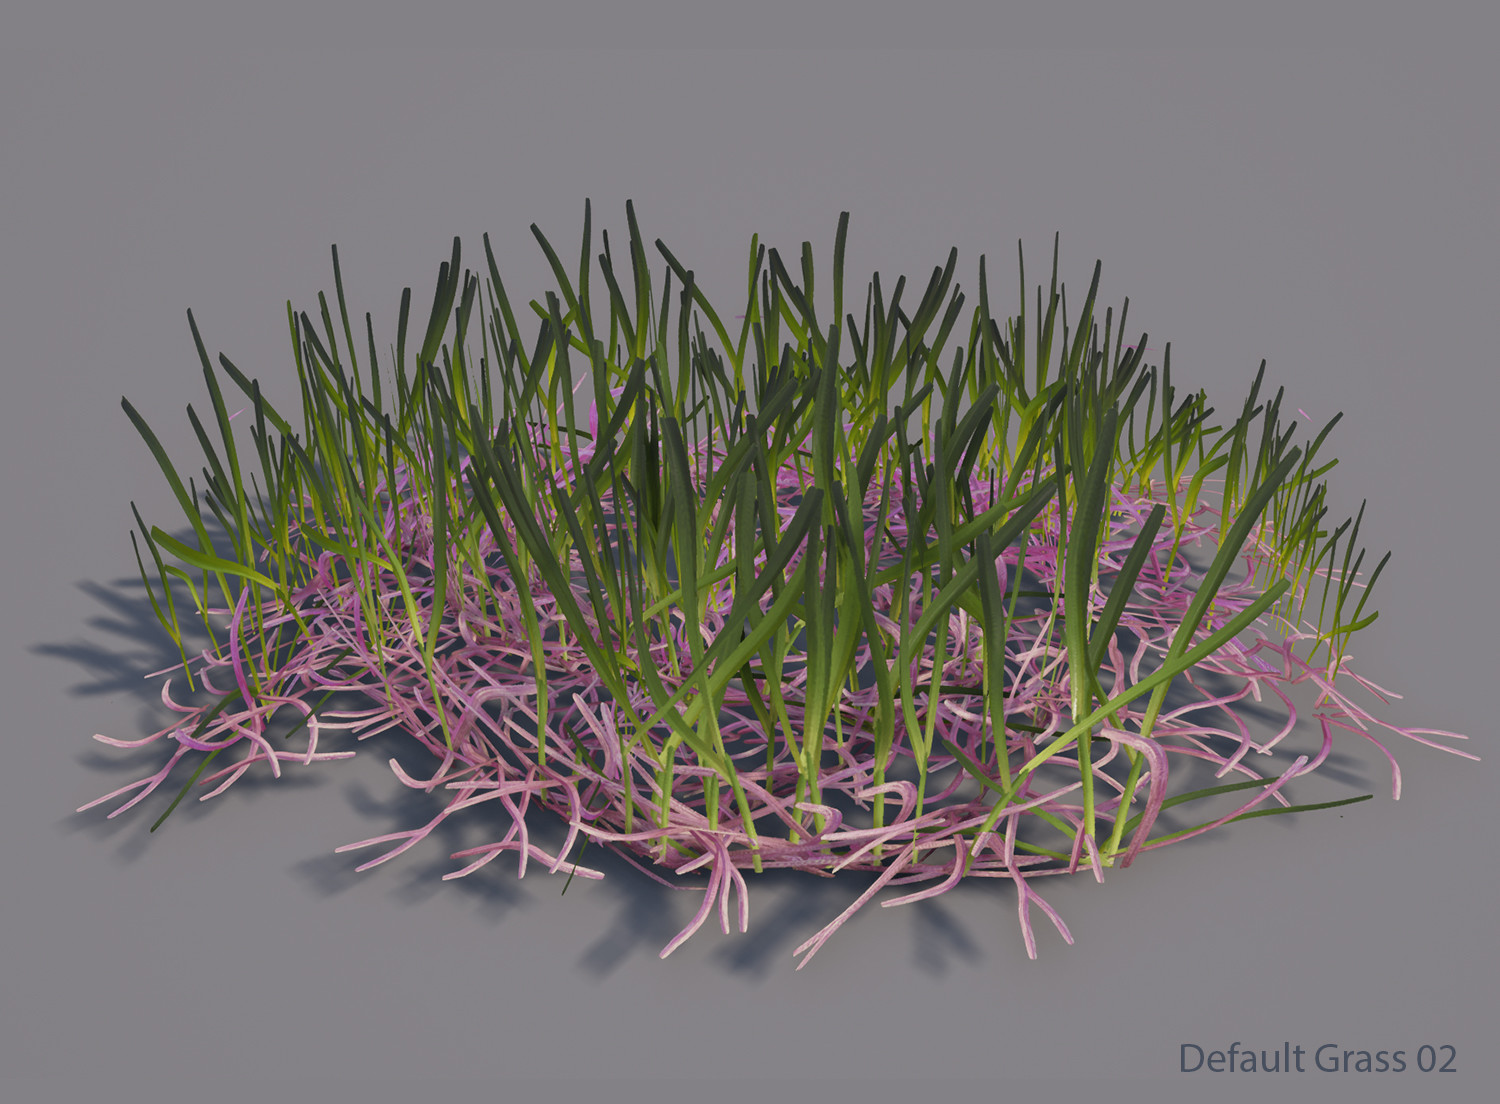 Christoffer radsby default grass 02